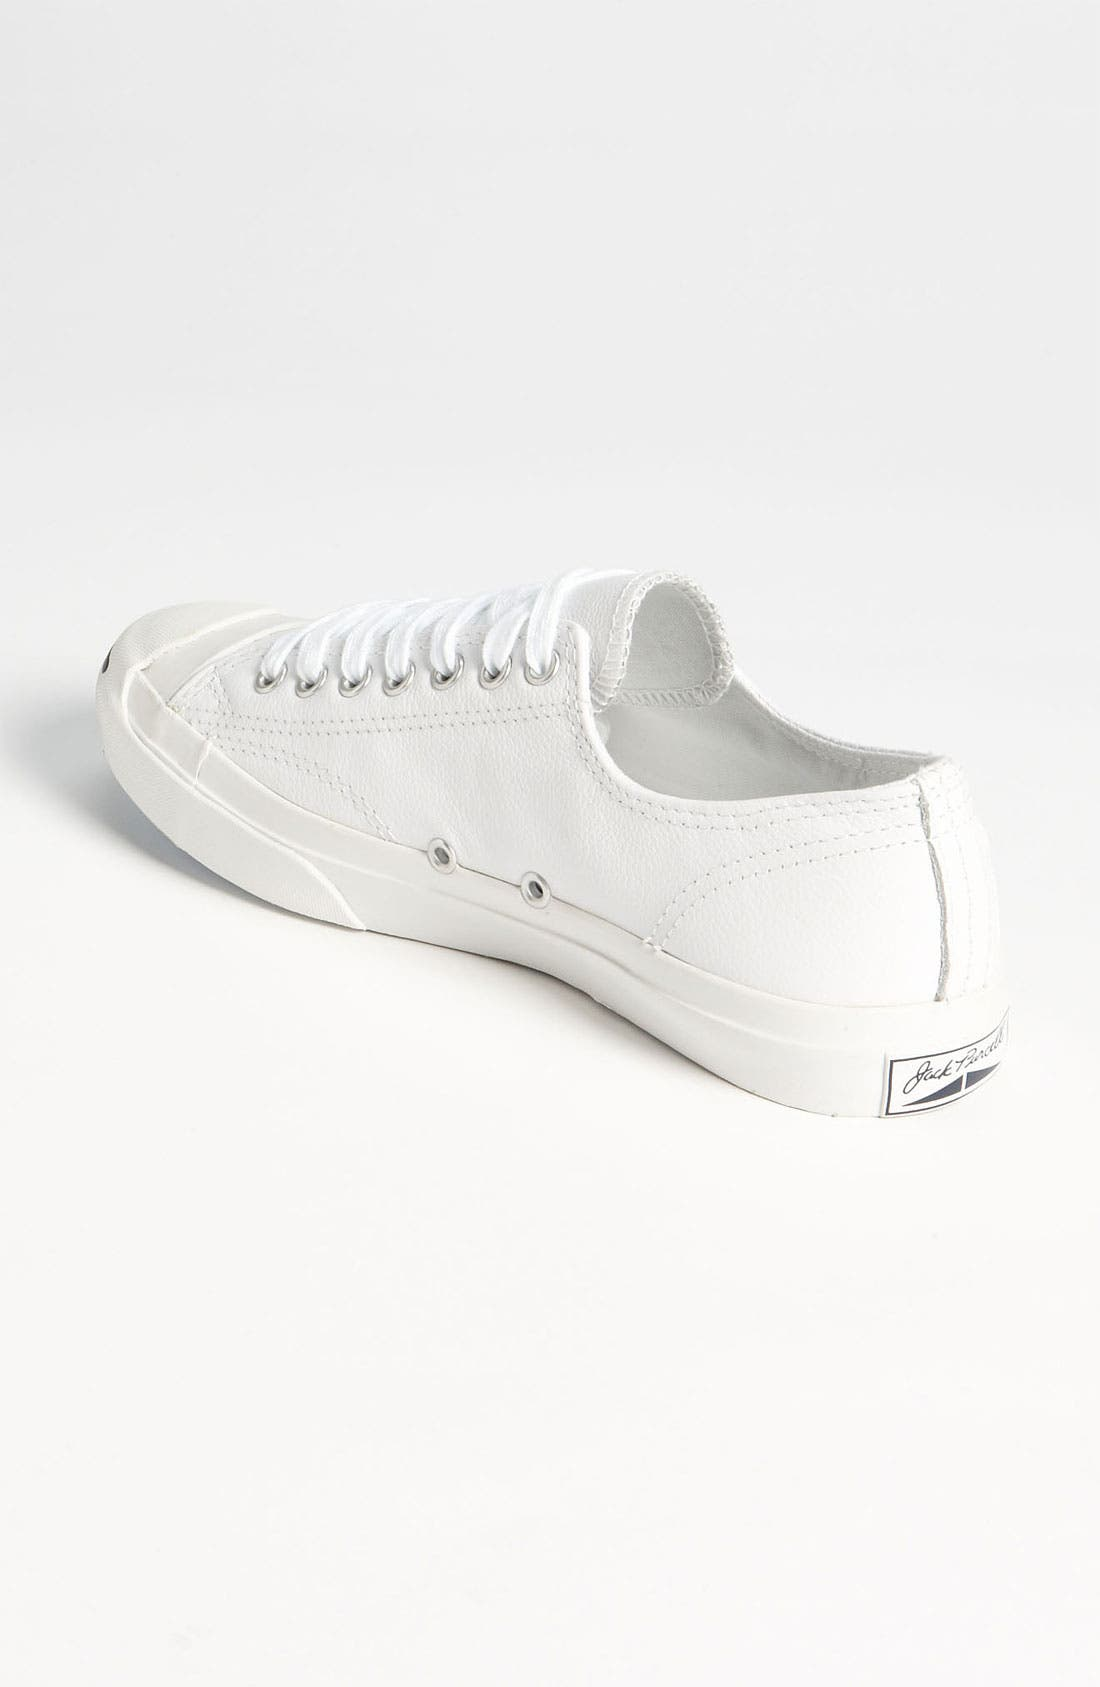 'Jack Purcell' Leather Sneaker,                             Alternate thumbnail 2, color,